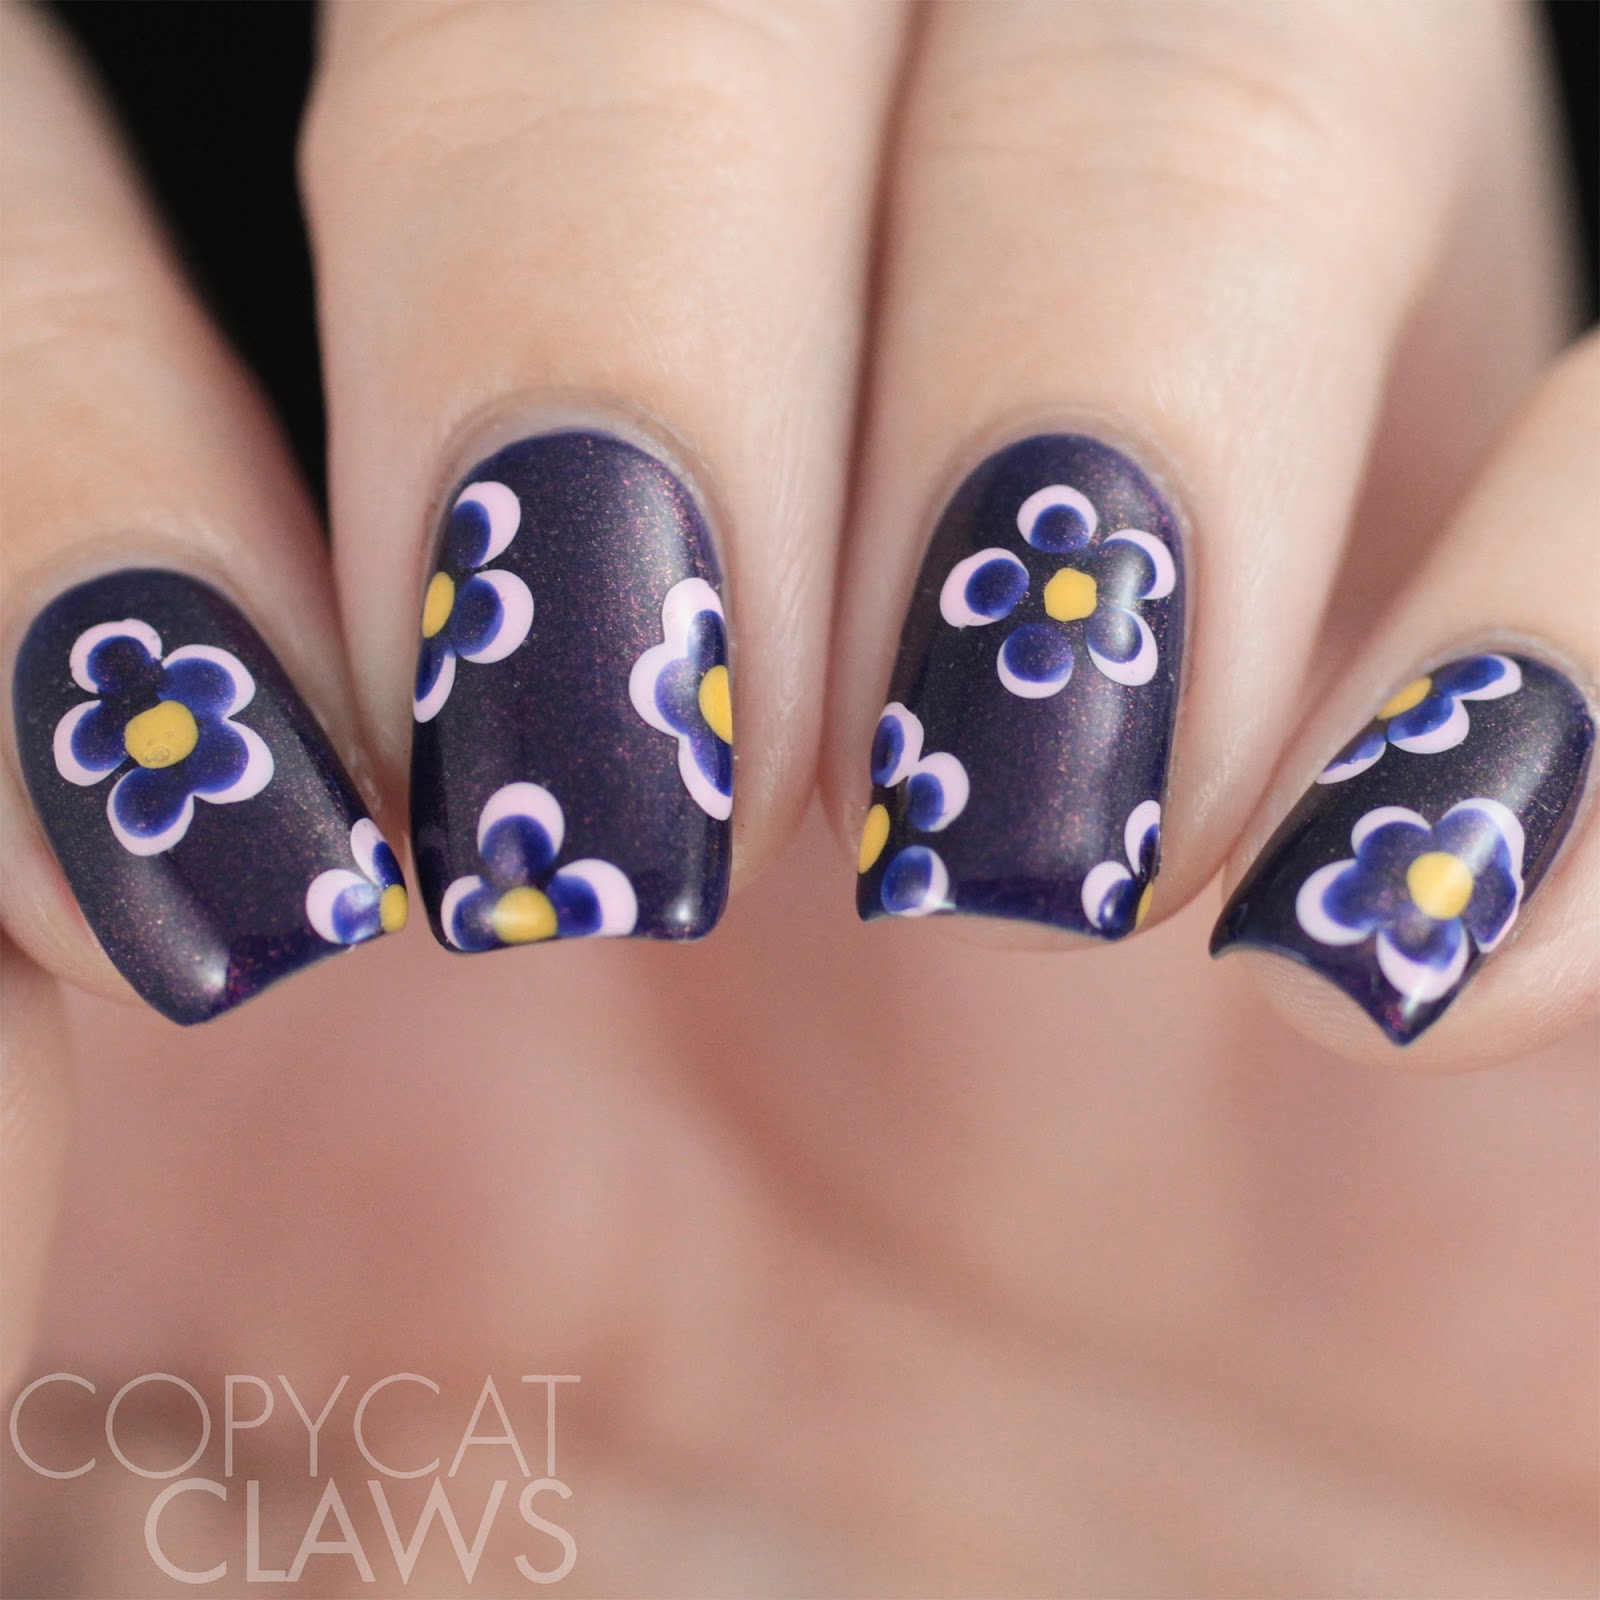 Copycat claws 26 great nail art ideas dotting tools but not well i found this awesome tutorial for using dotting tools for flowers they are still dots but they get transformed into pretty flowers so technically prinsesfo Gallery